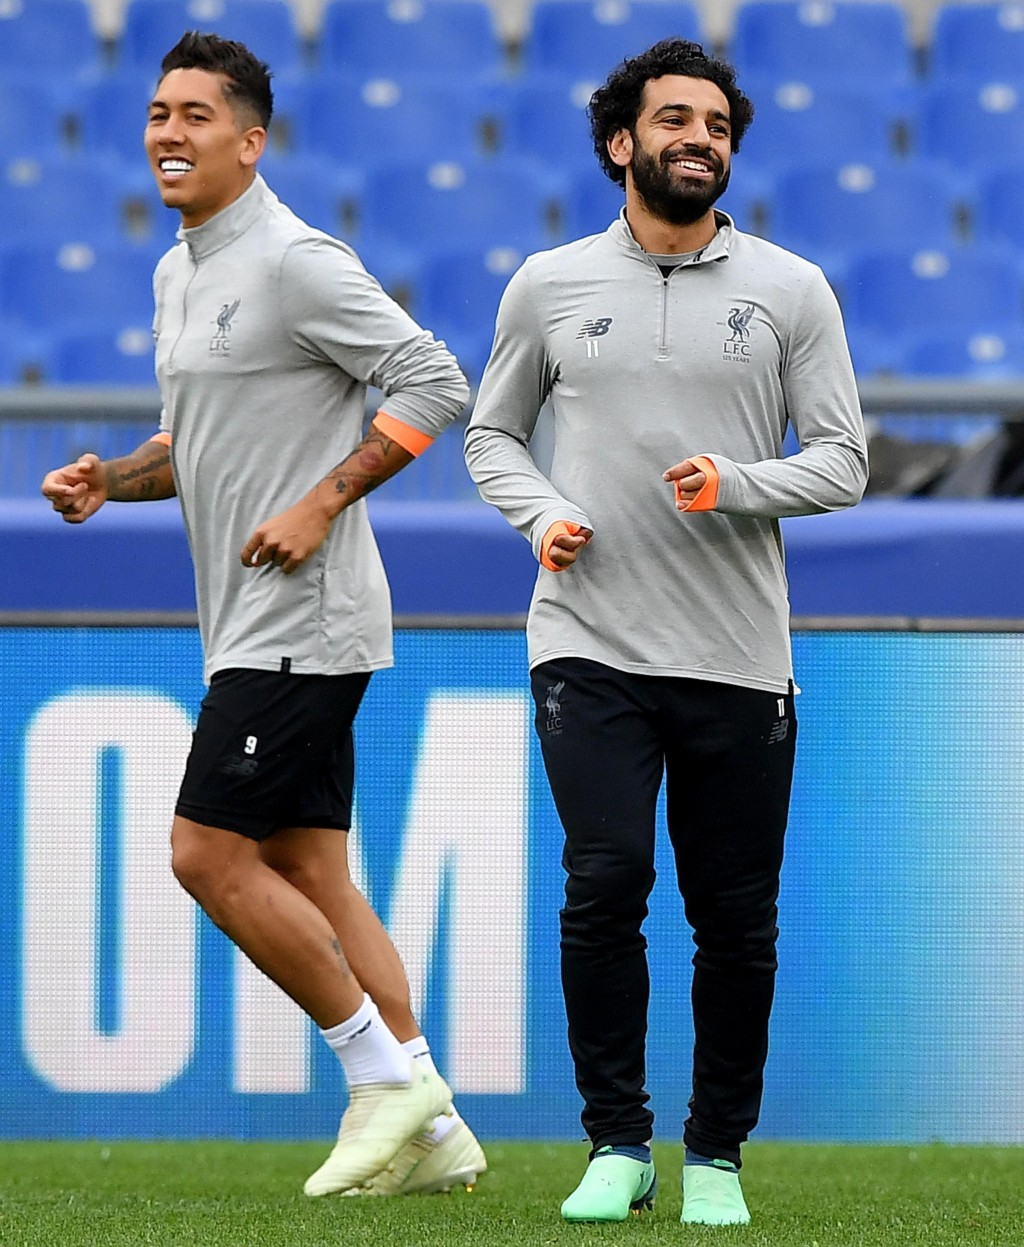 Liverpool players Mohamed Salah, right, and Roberto Firmino attend a team training session at the Olympic Stadium, in Rome, May 1, 2018. Liverpool wil...